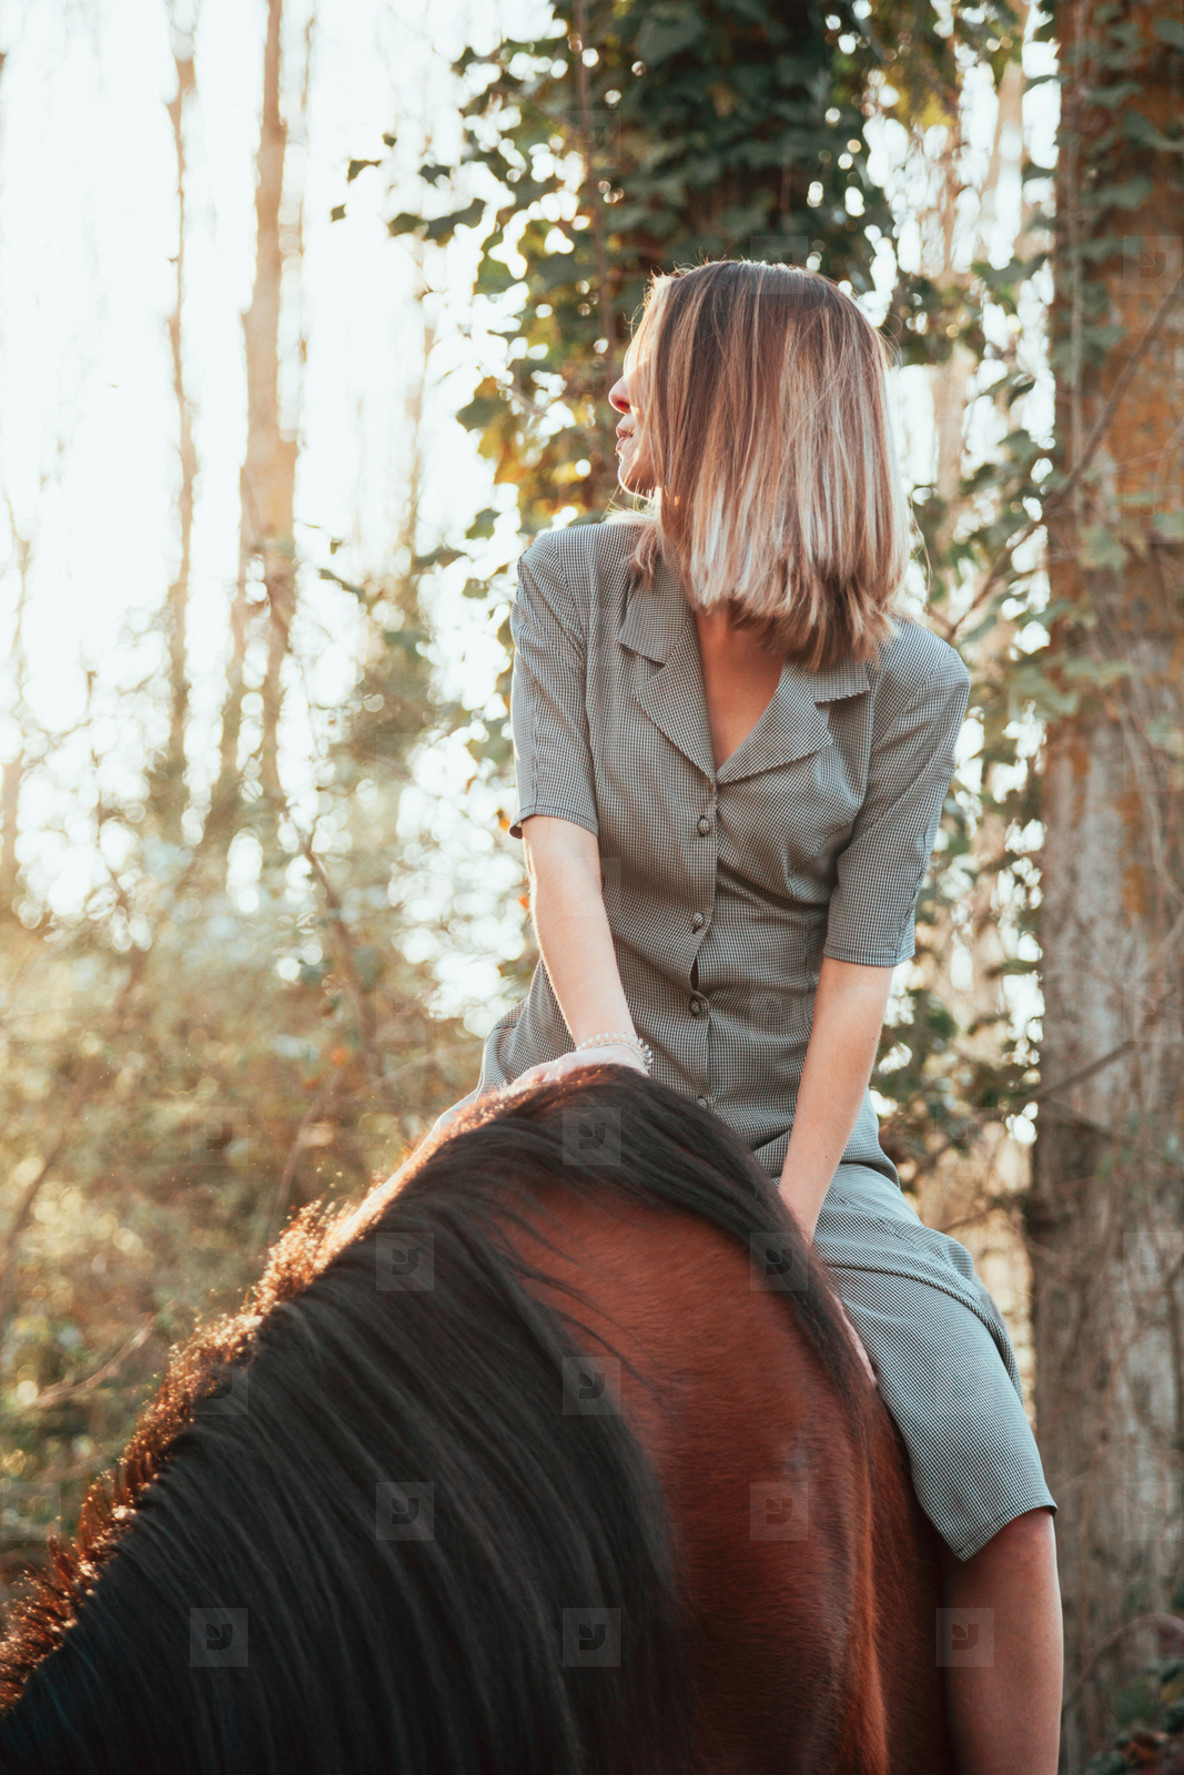 Beautiful young woman riding her brown horse and wearing dress